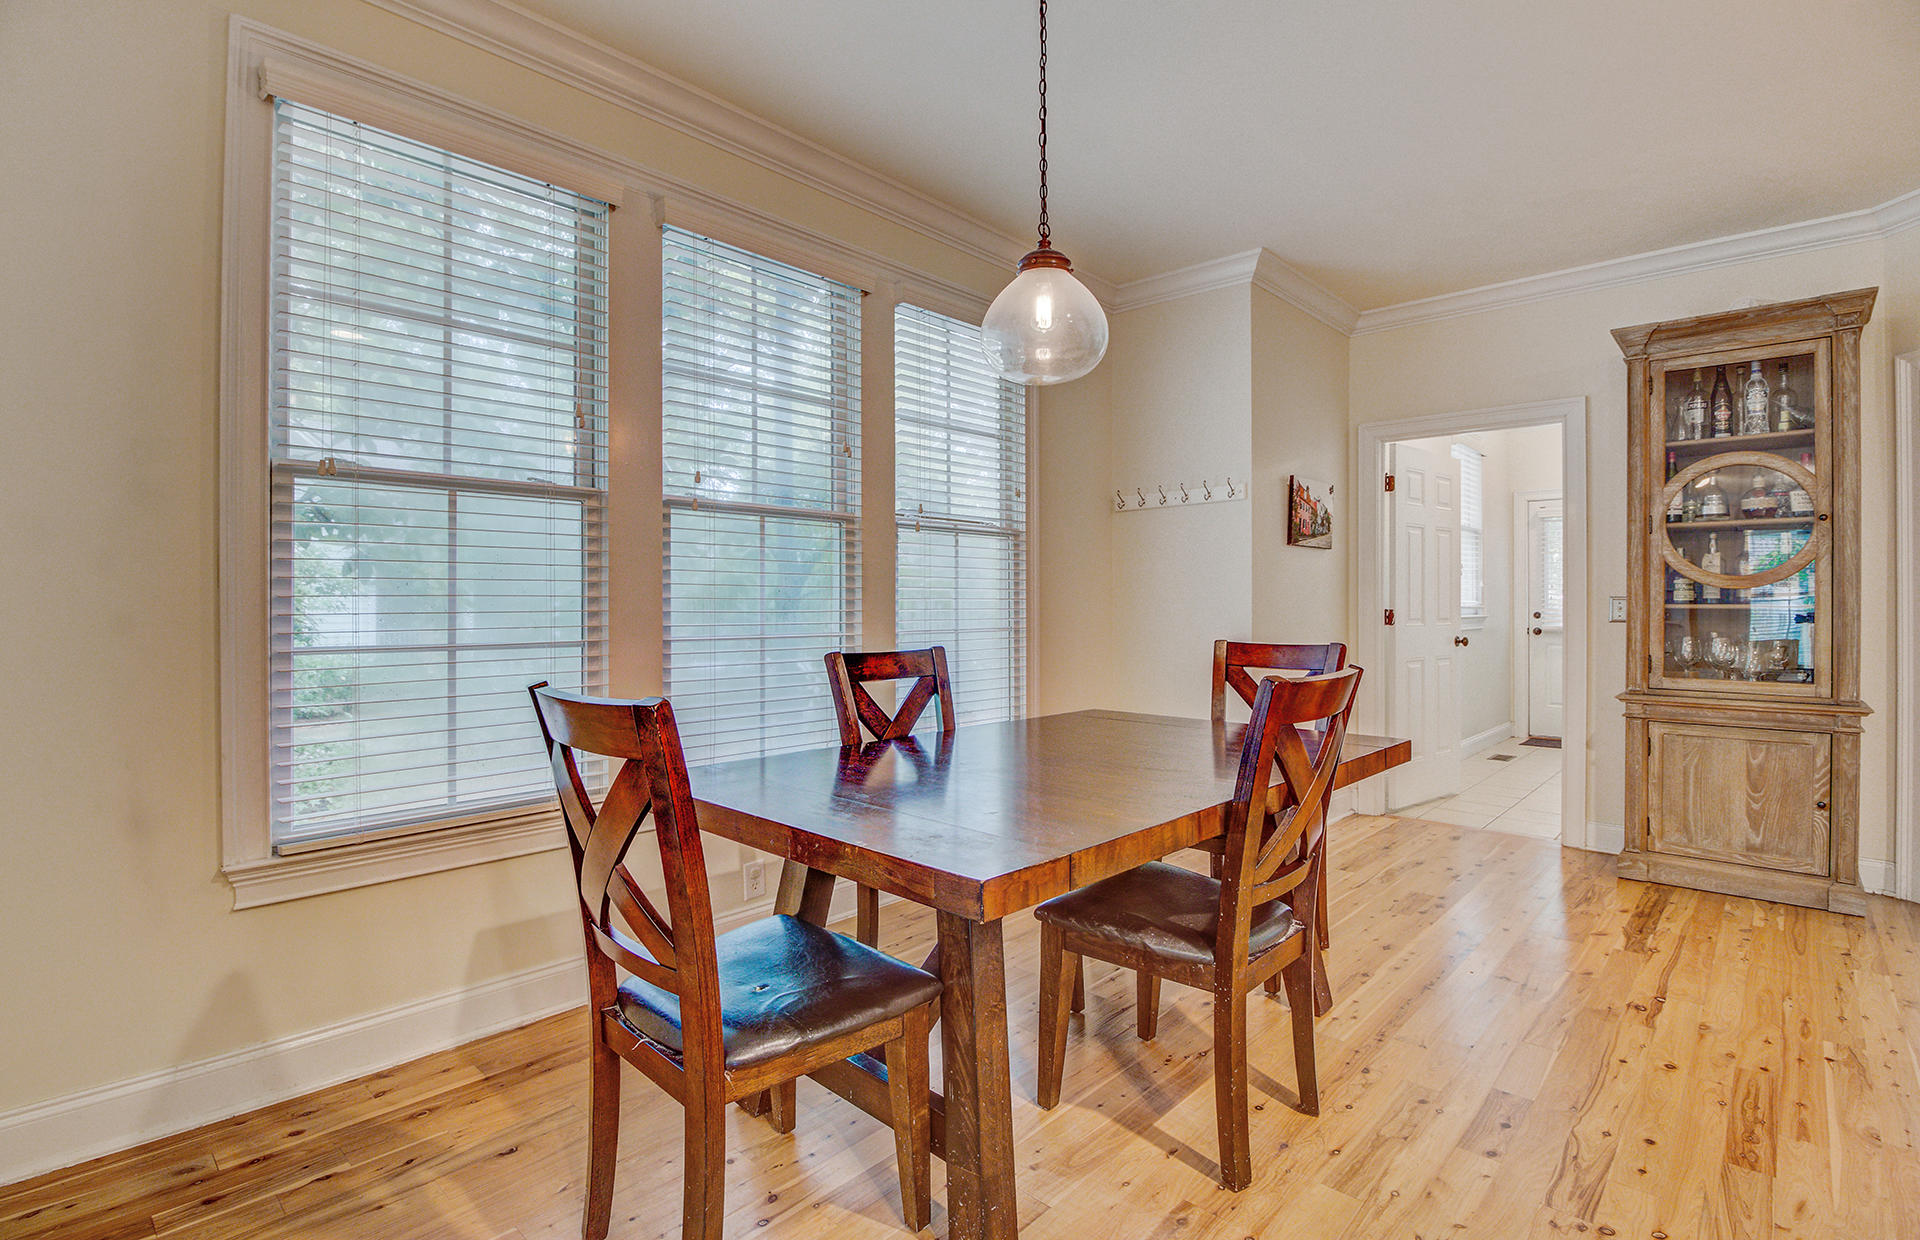 The Villages In St Johns Woods Homes For Sale - 5032 Coral Reef, Johns Island, SC - 24